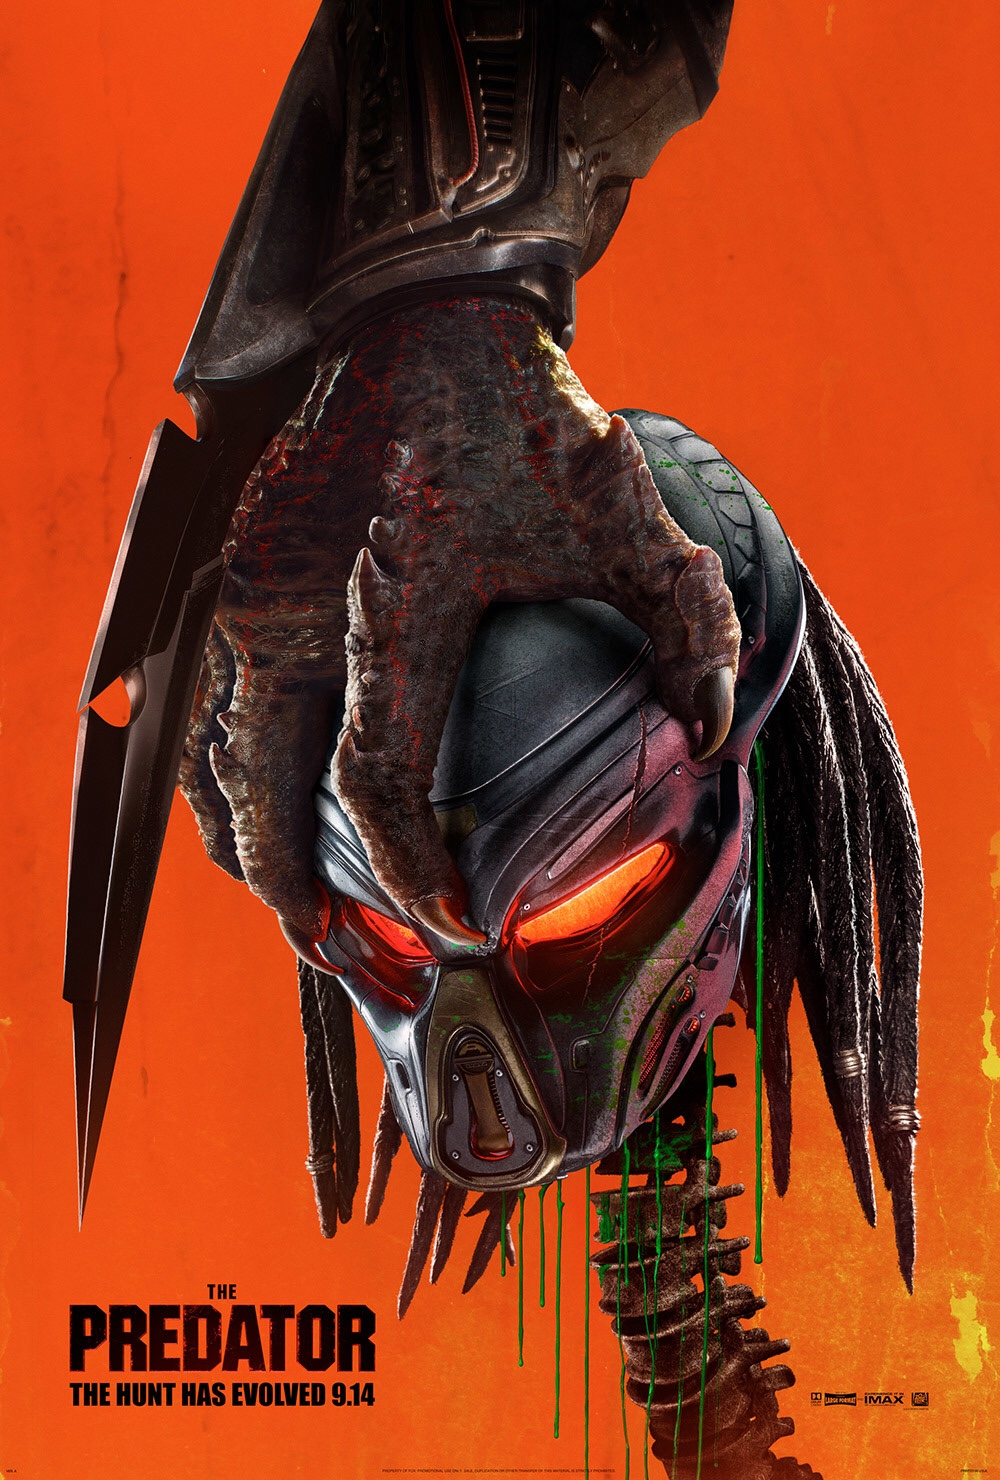 The Predator (2018) spoilers within